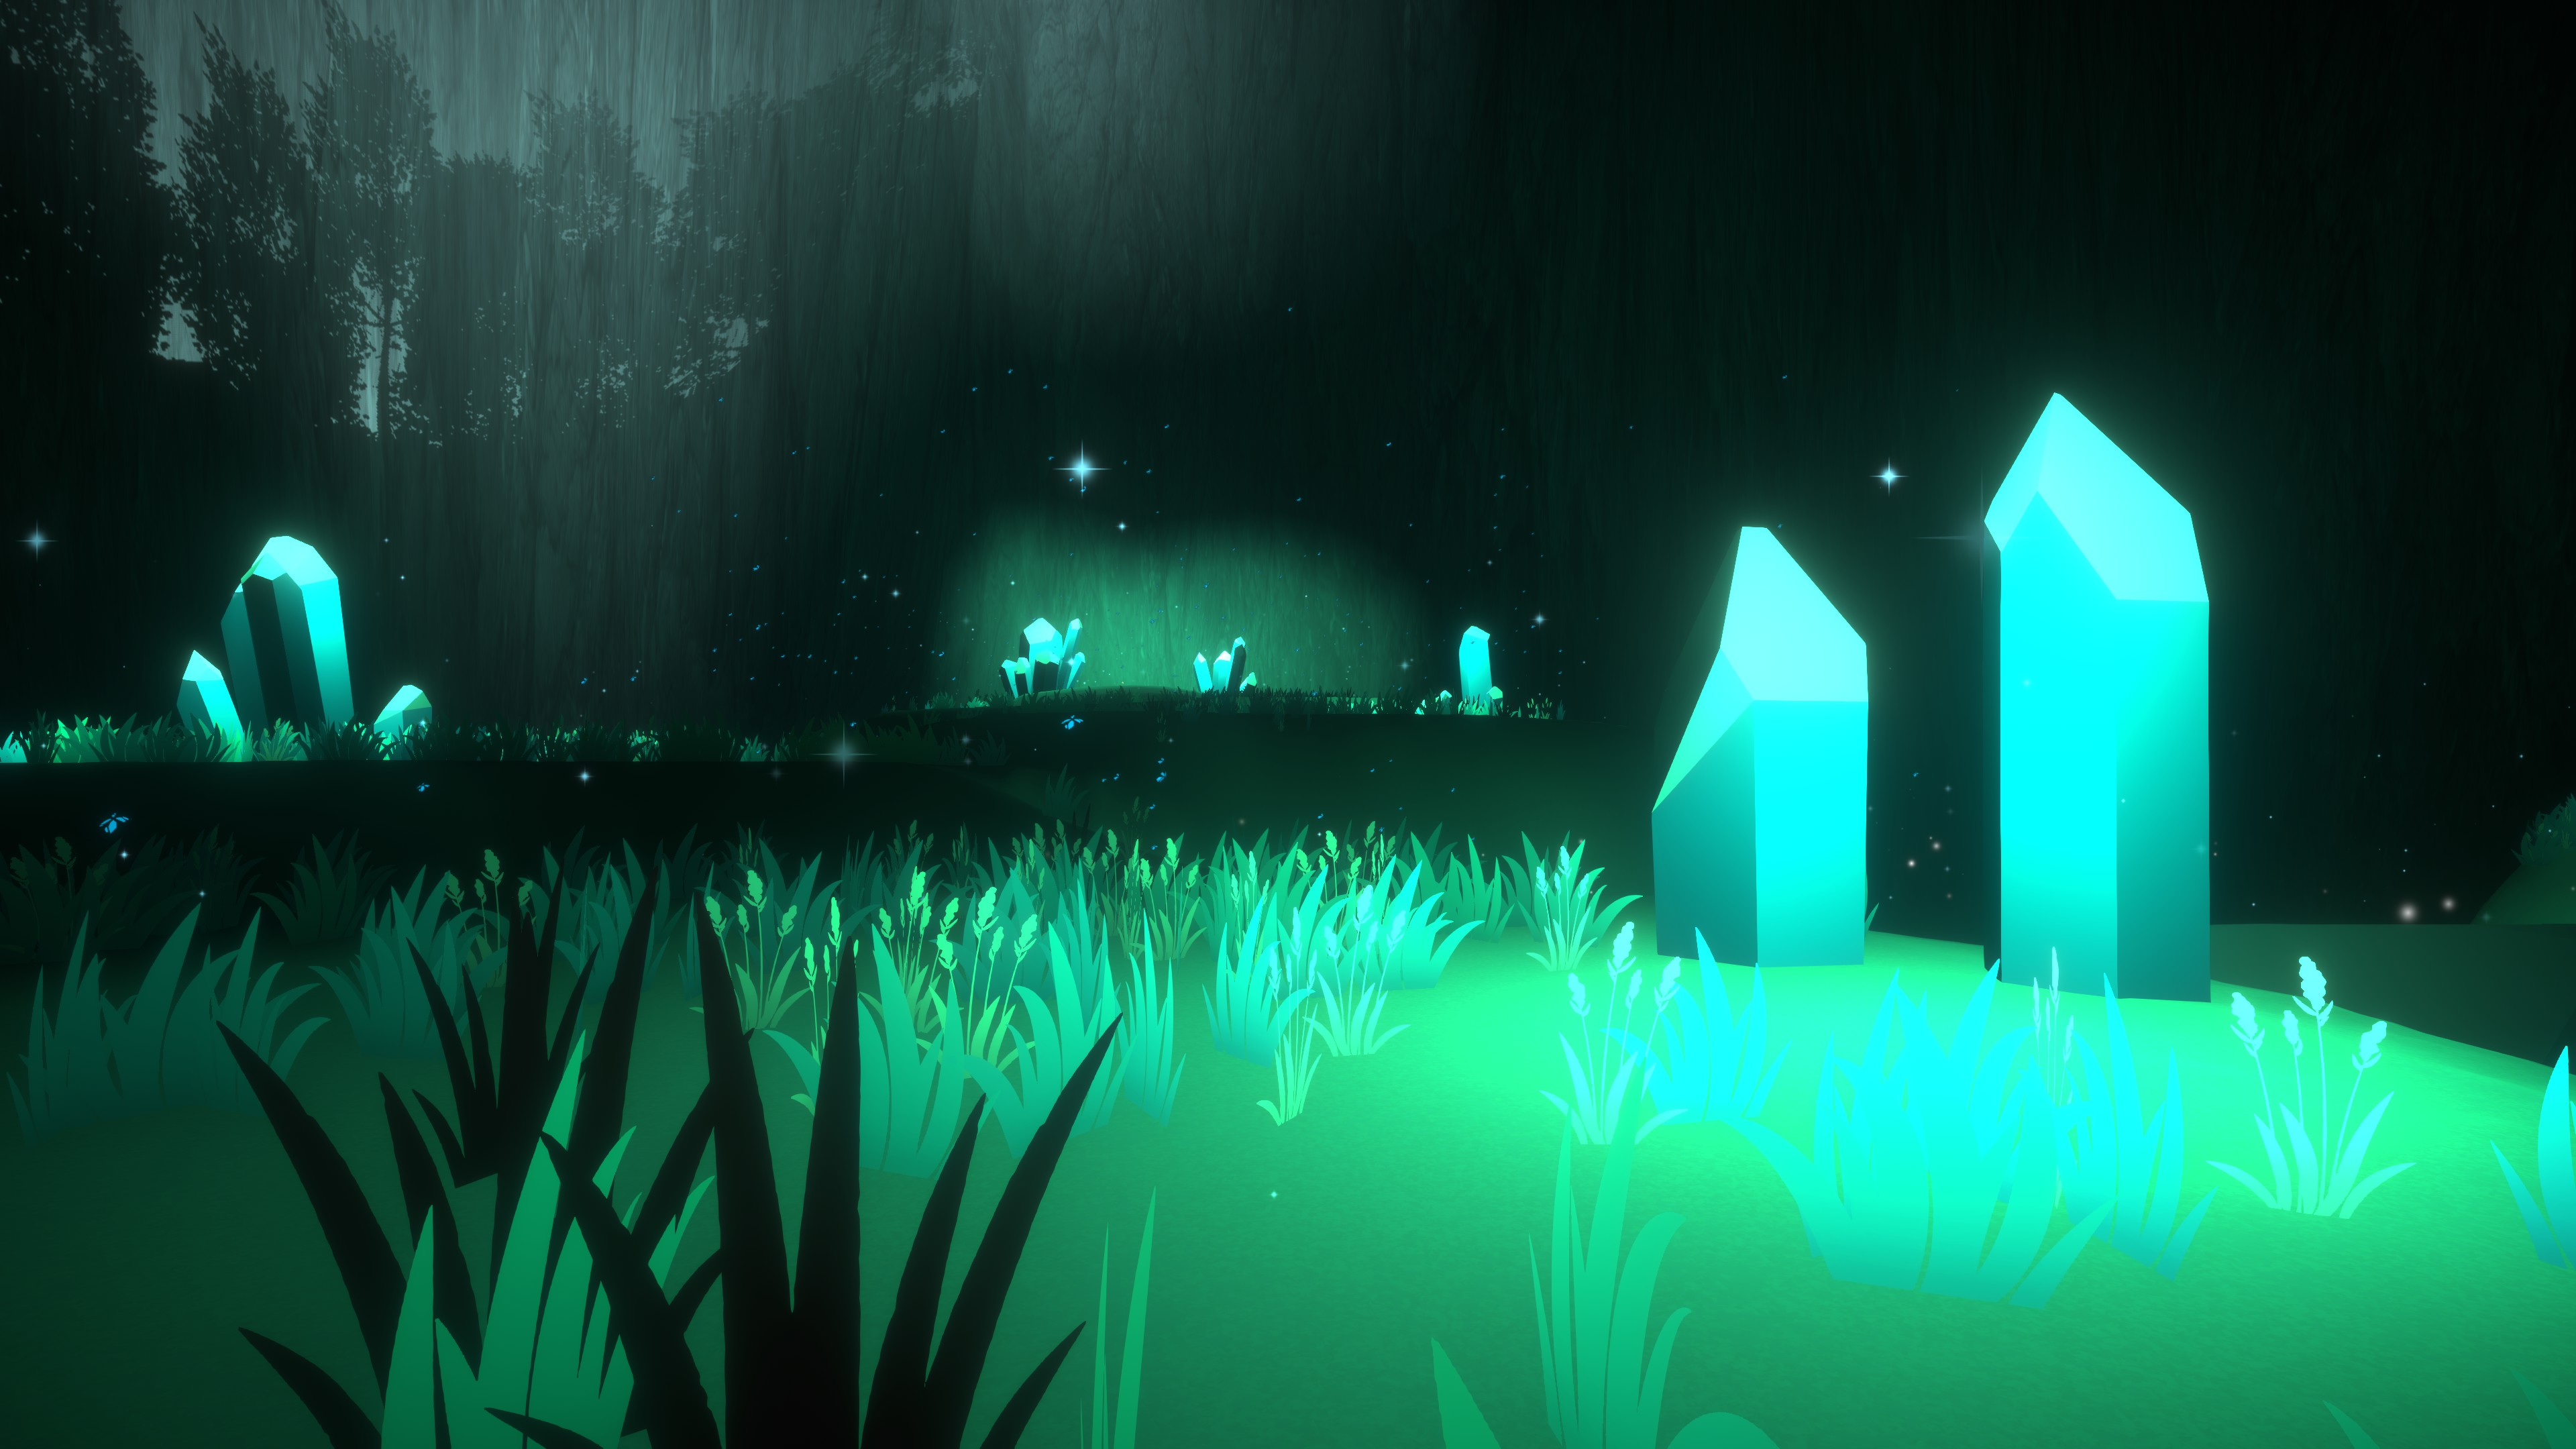 The First Friend. Large glowing crystals amidst grass with the shadow of trees being cast on a cliff in the background.